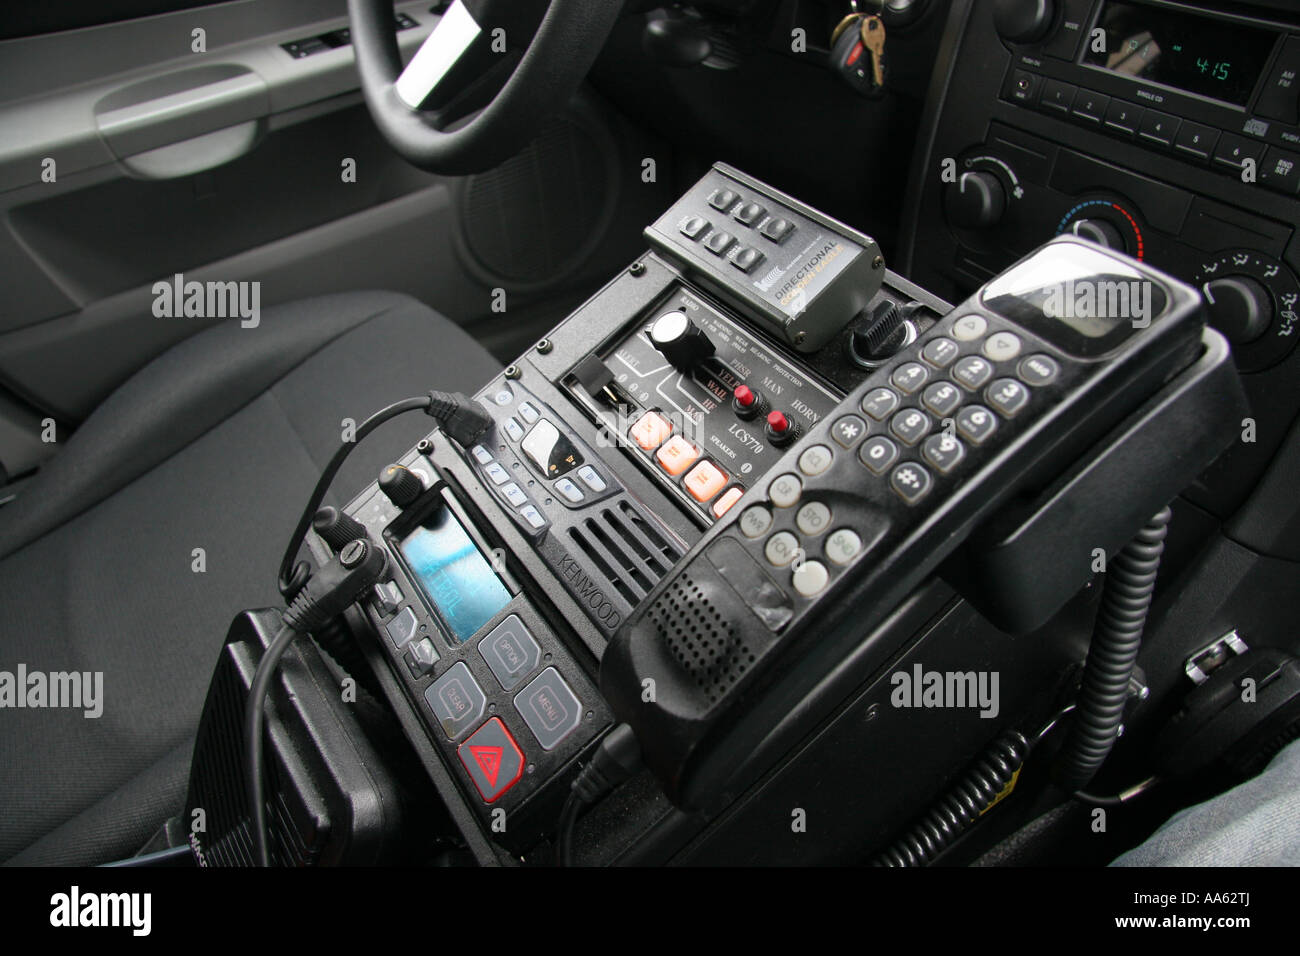 police car radio and emergency equipment control panel stock photo royalty free image 12526145. Black Bedroom Furniture Sets. Home Design Ideas